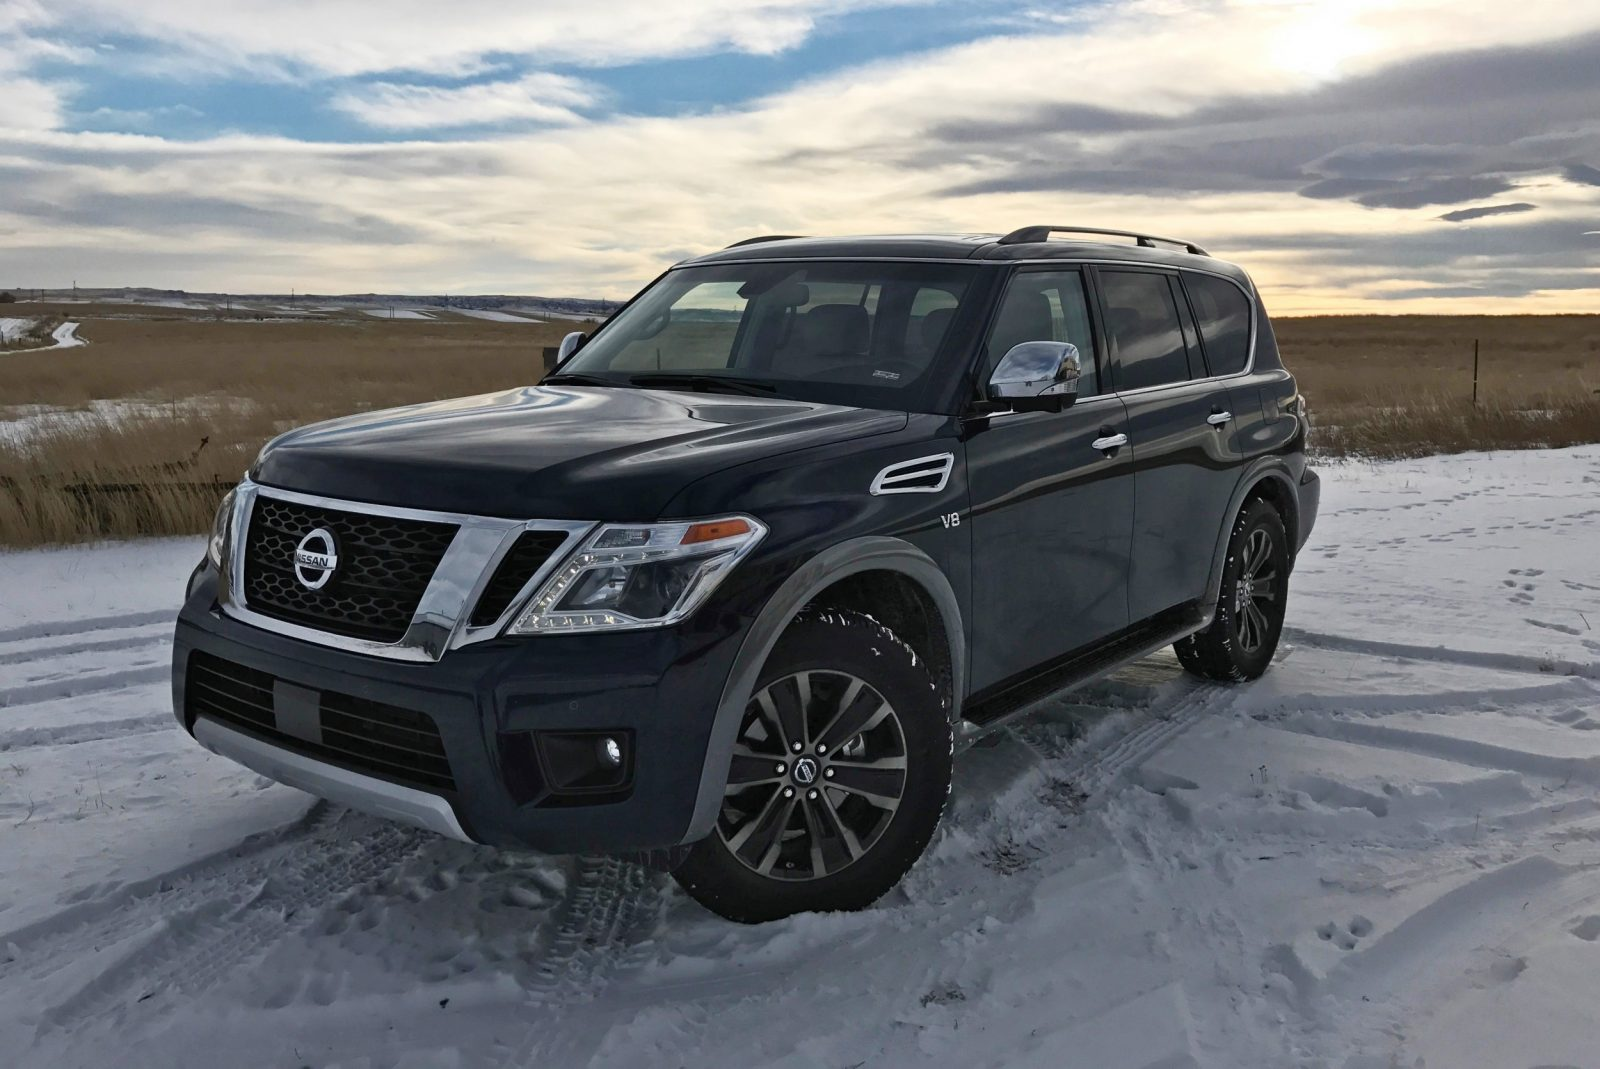 It Continues Nissan S Push To Be More Than A Low Budget Volume Er And Instead Major Player In The U Market